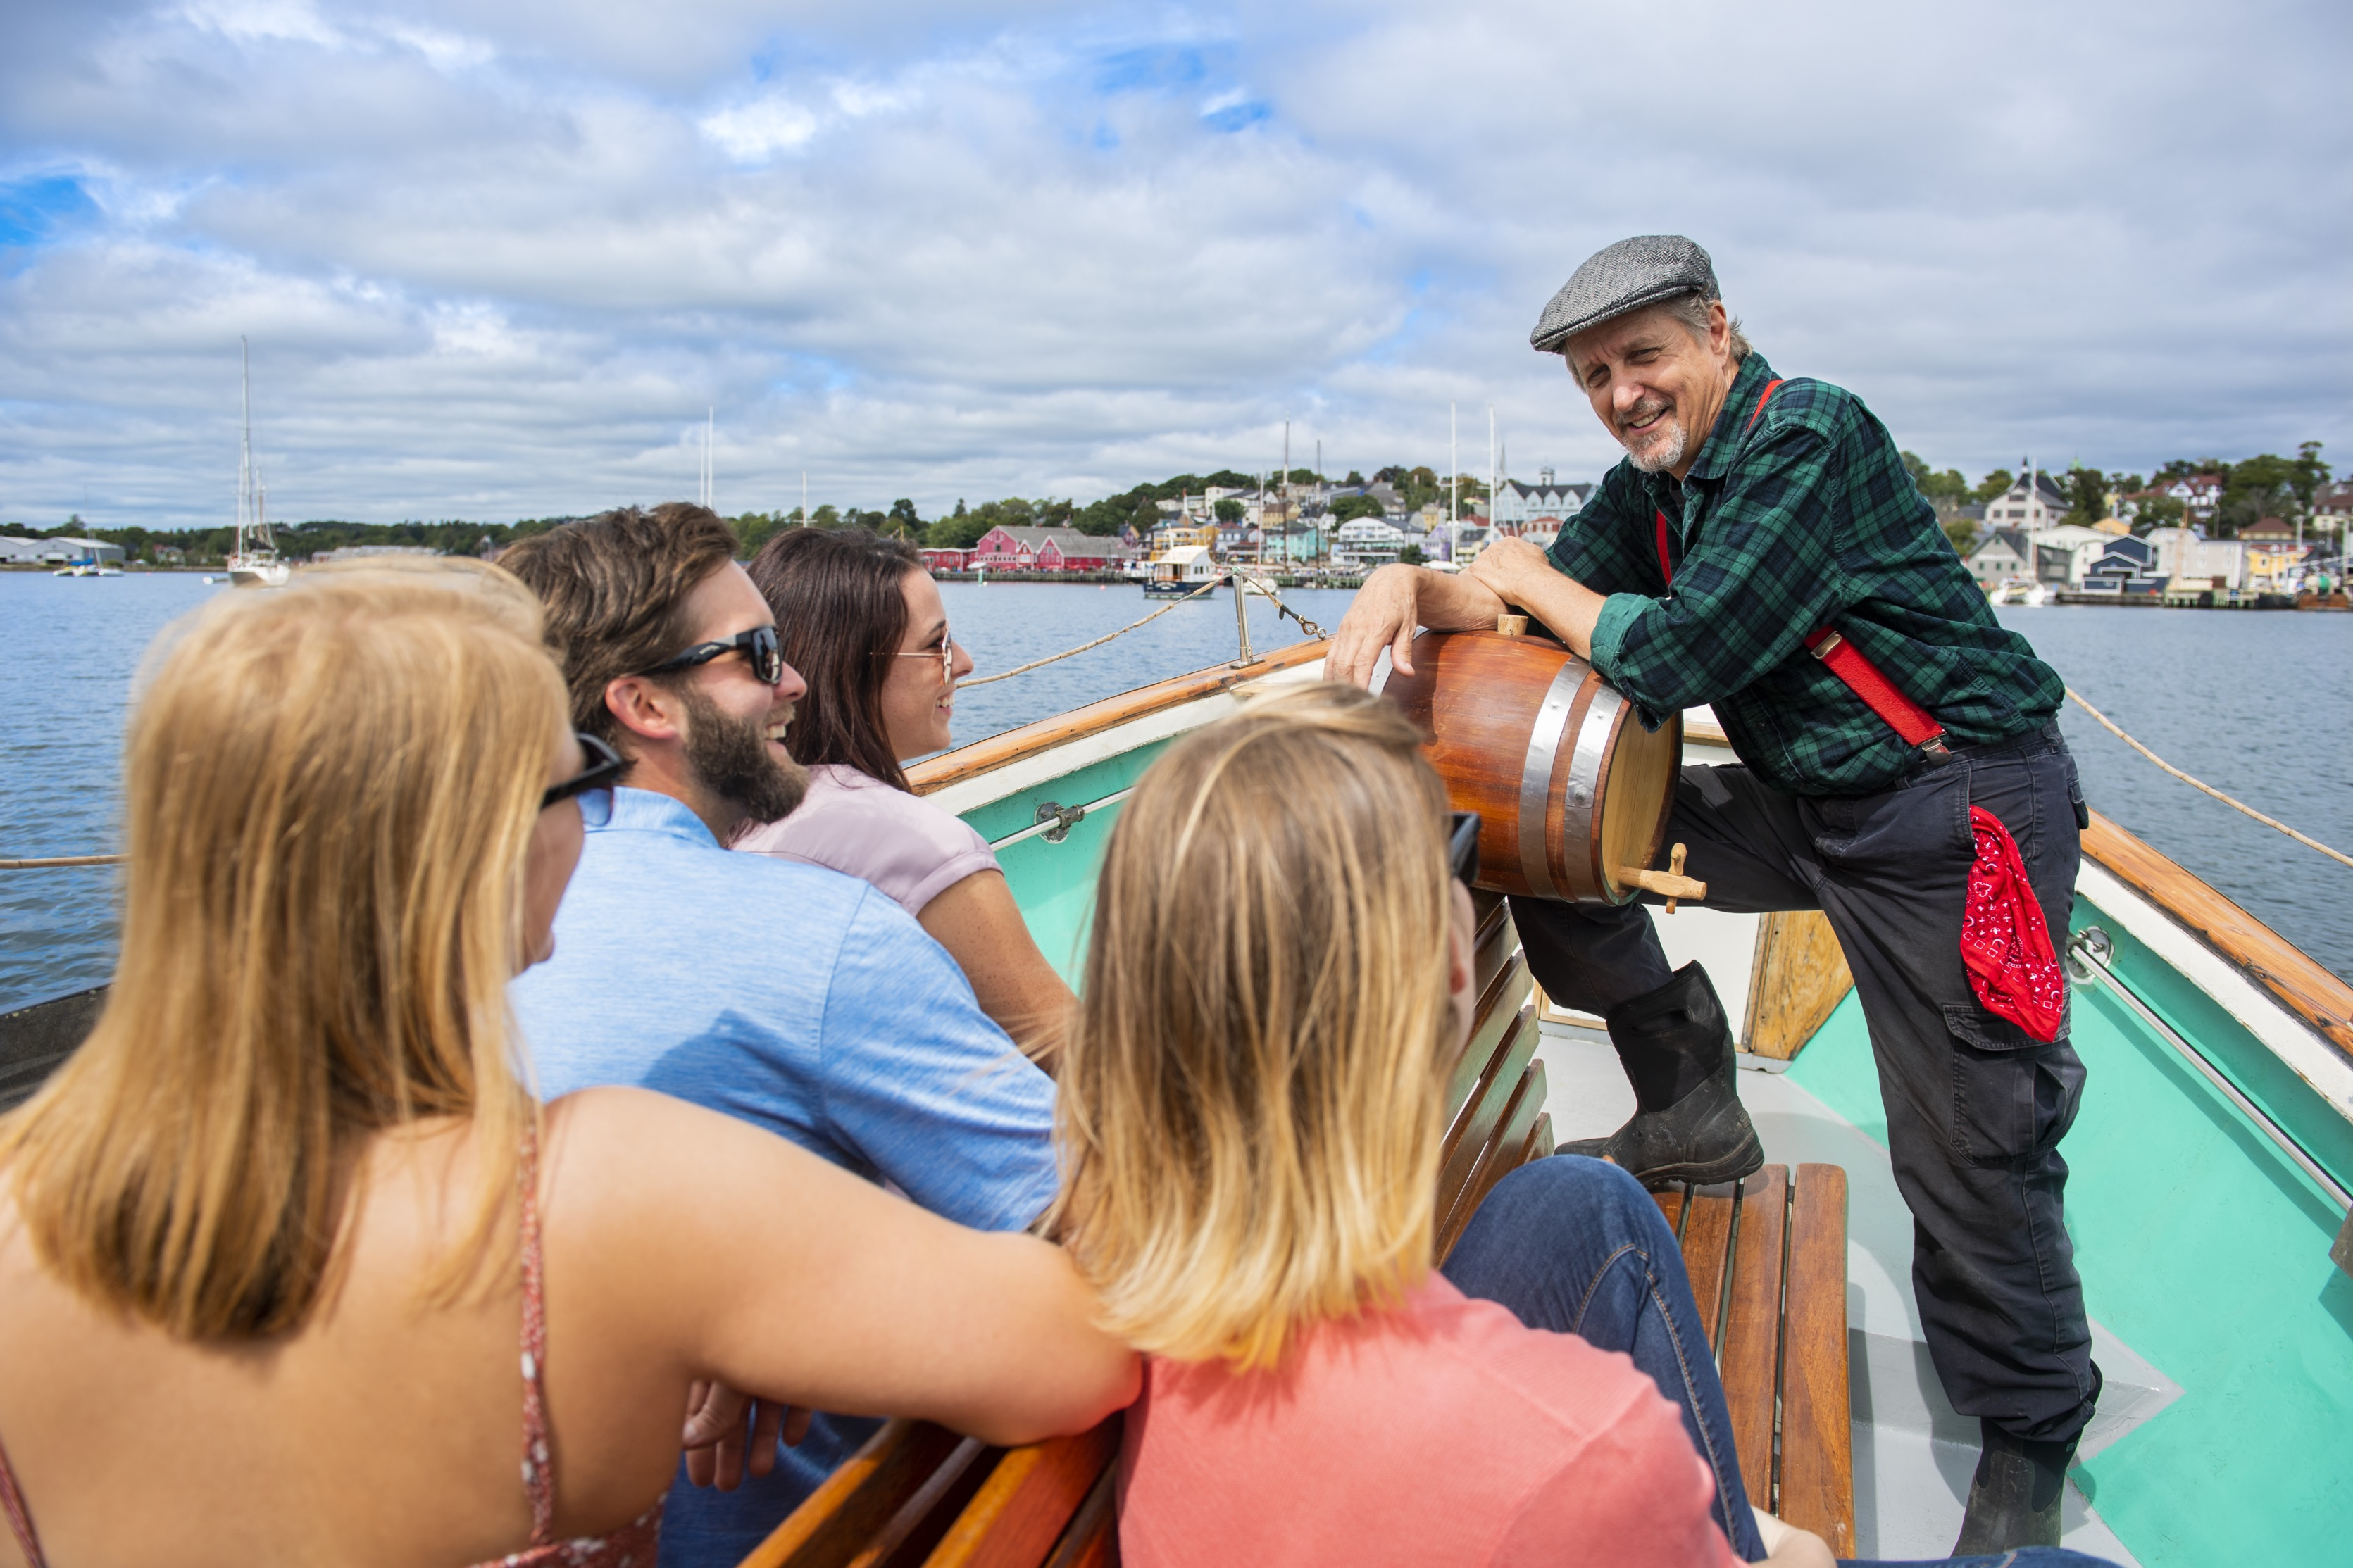 Candlebox Kayaking - Lunenburg Distilled: A Culinary Adventure